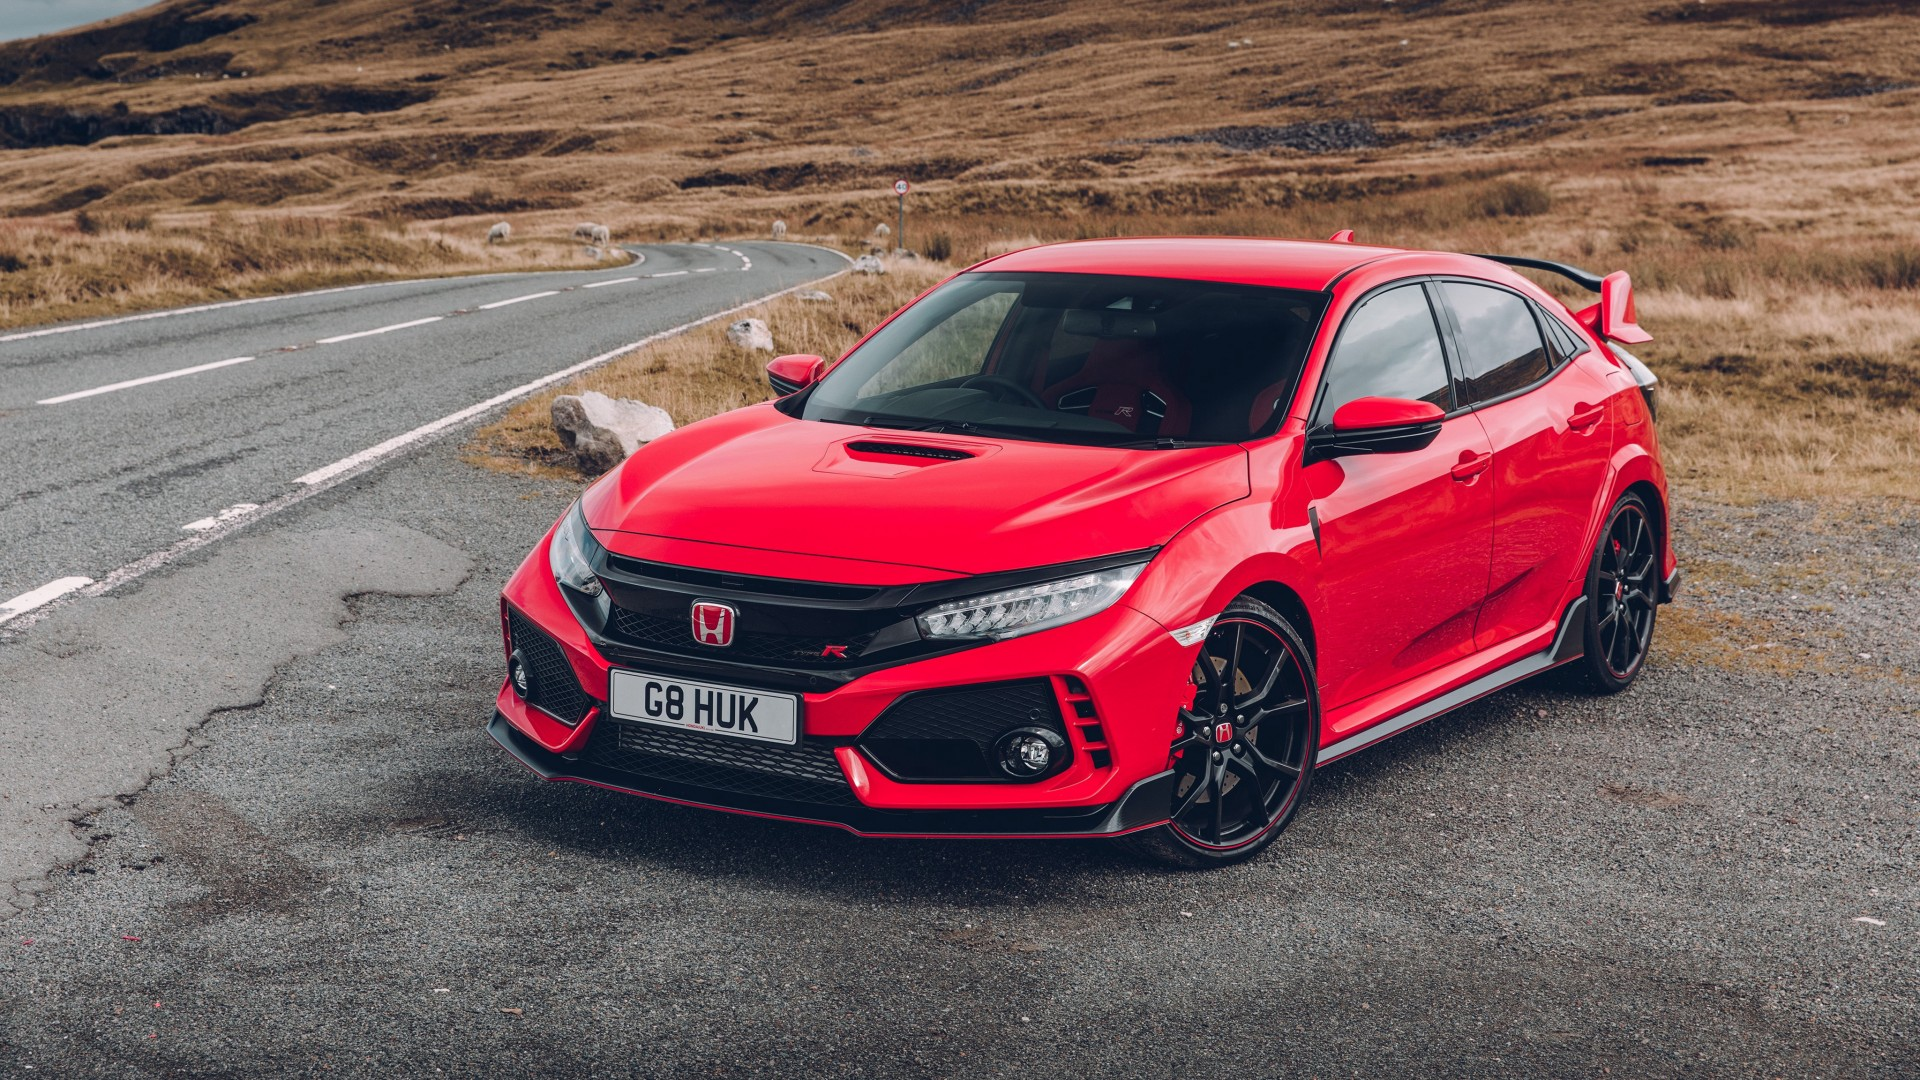 2017 Honda Civic Type R Wallpaper | HD Car Wallpapers | ID ...